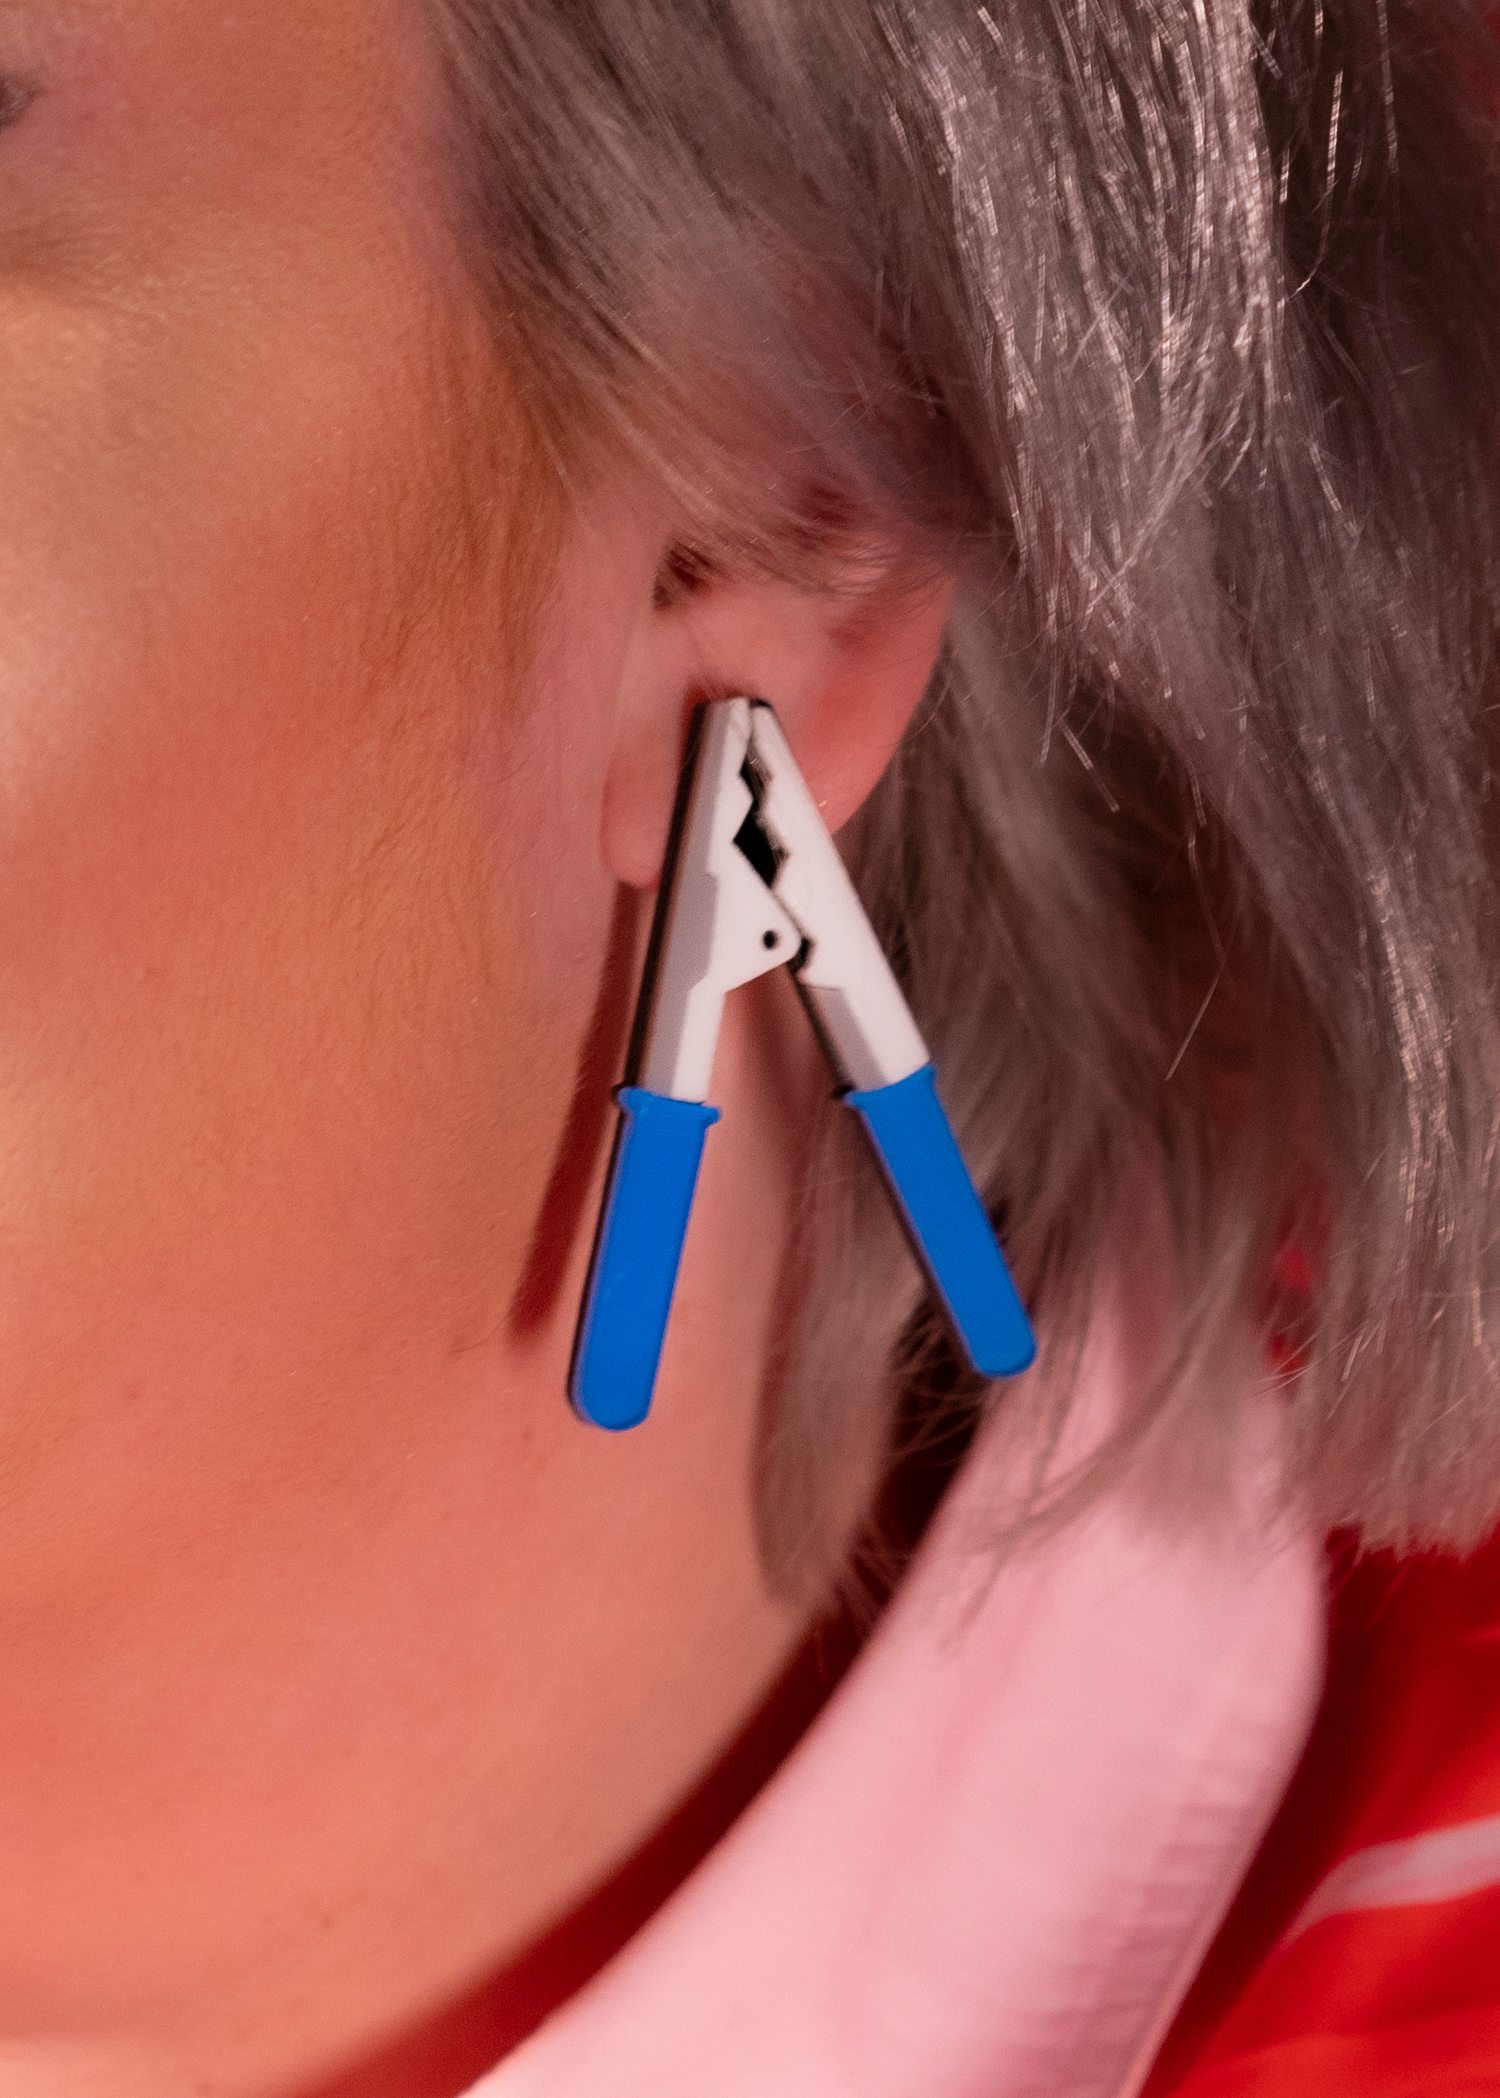 blue clamp earrings